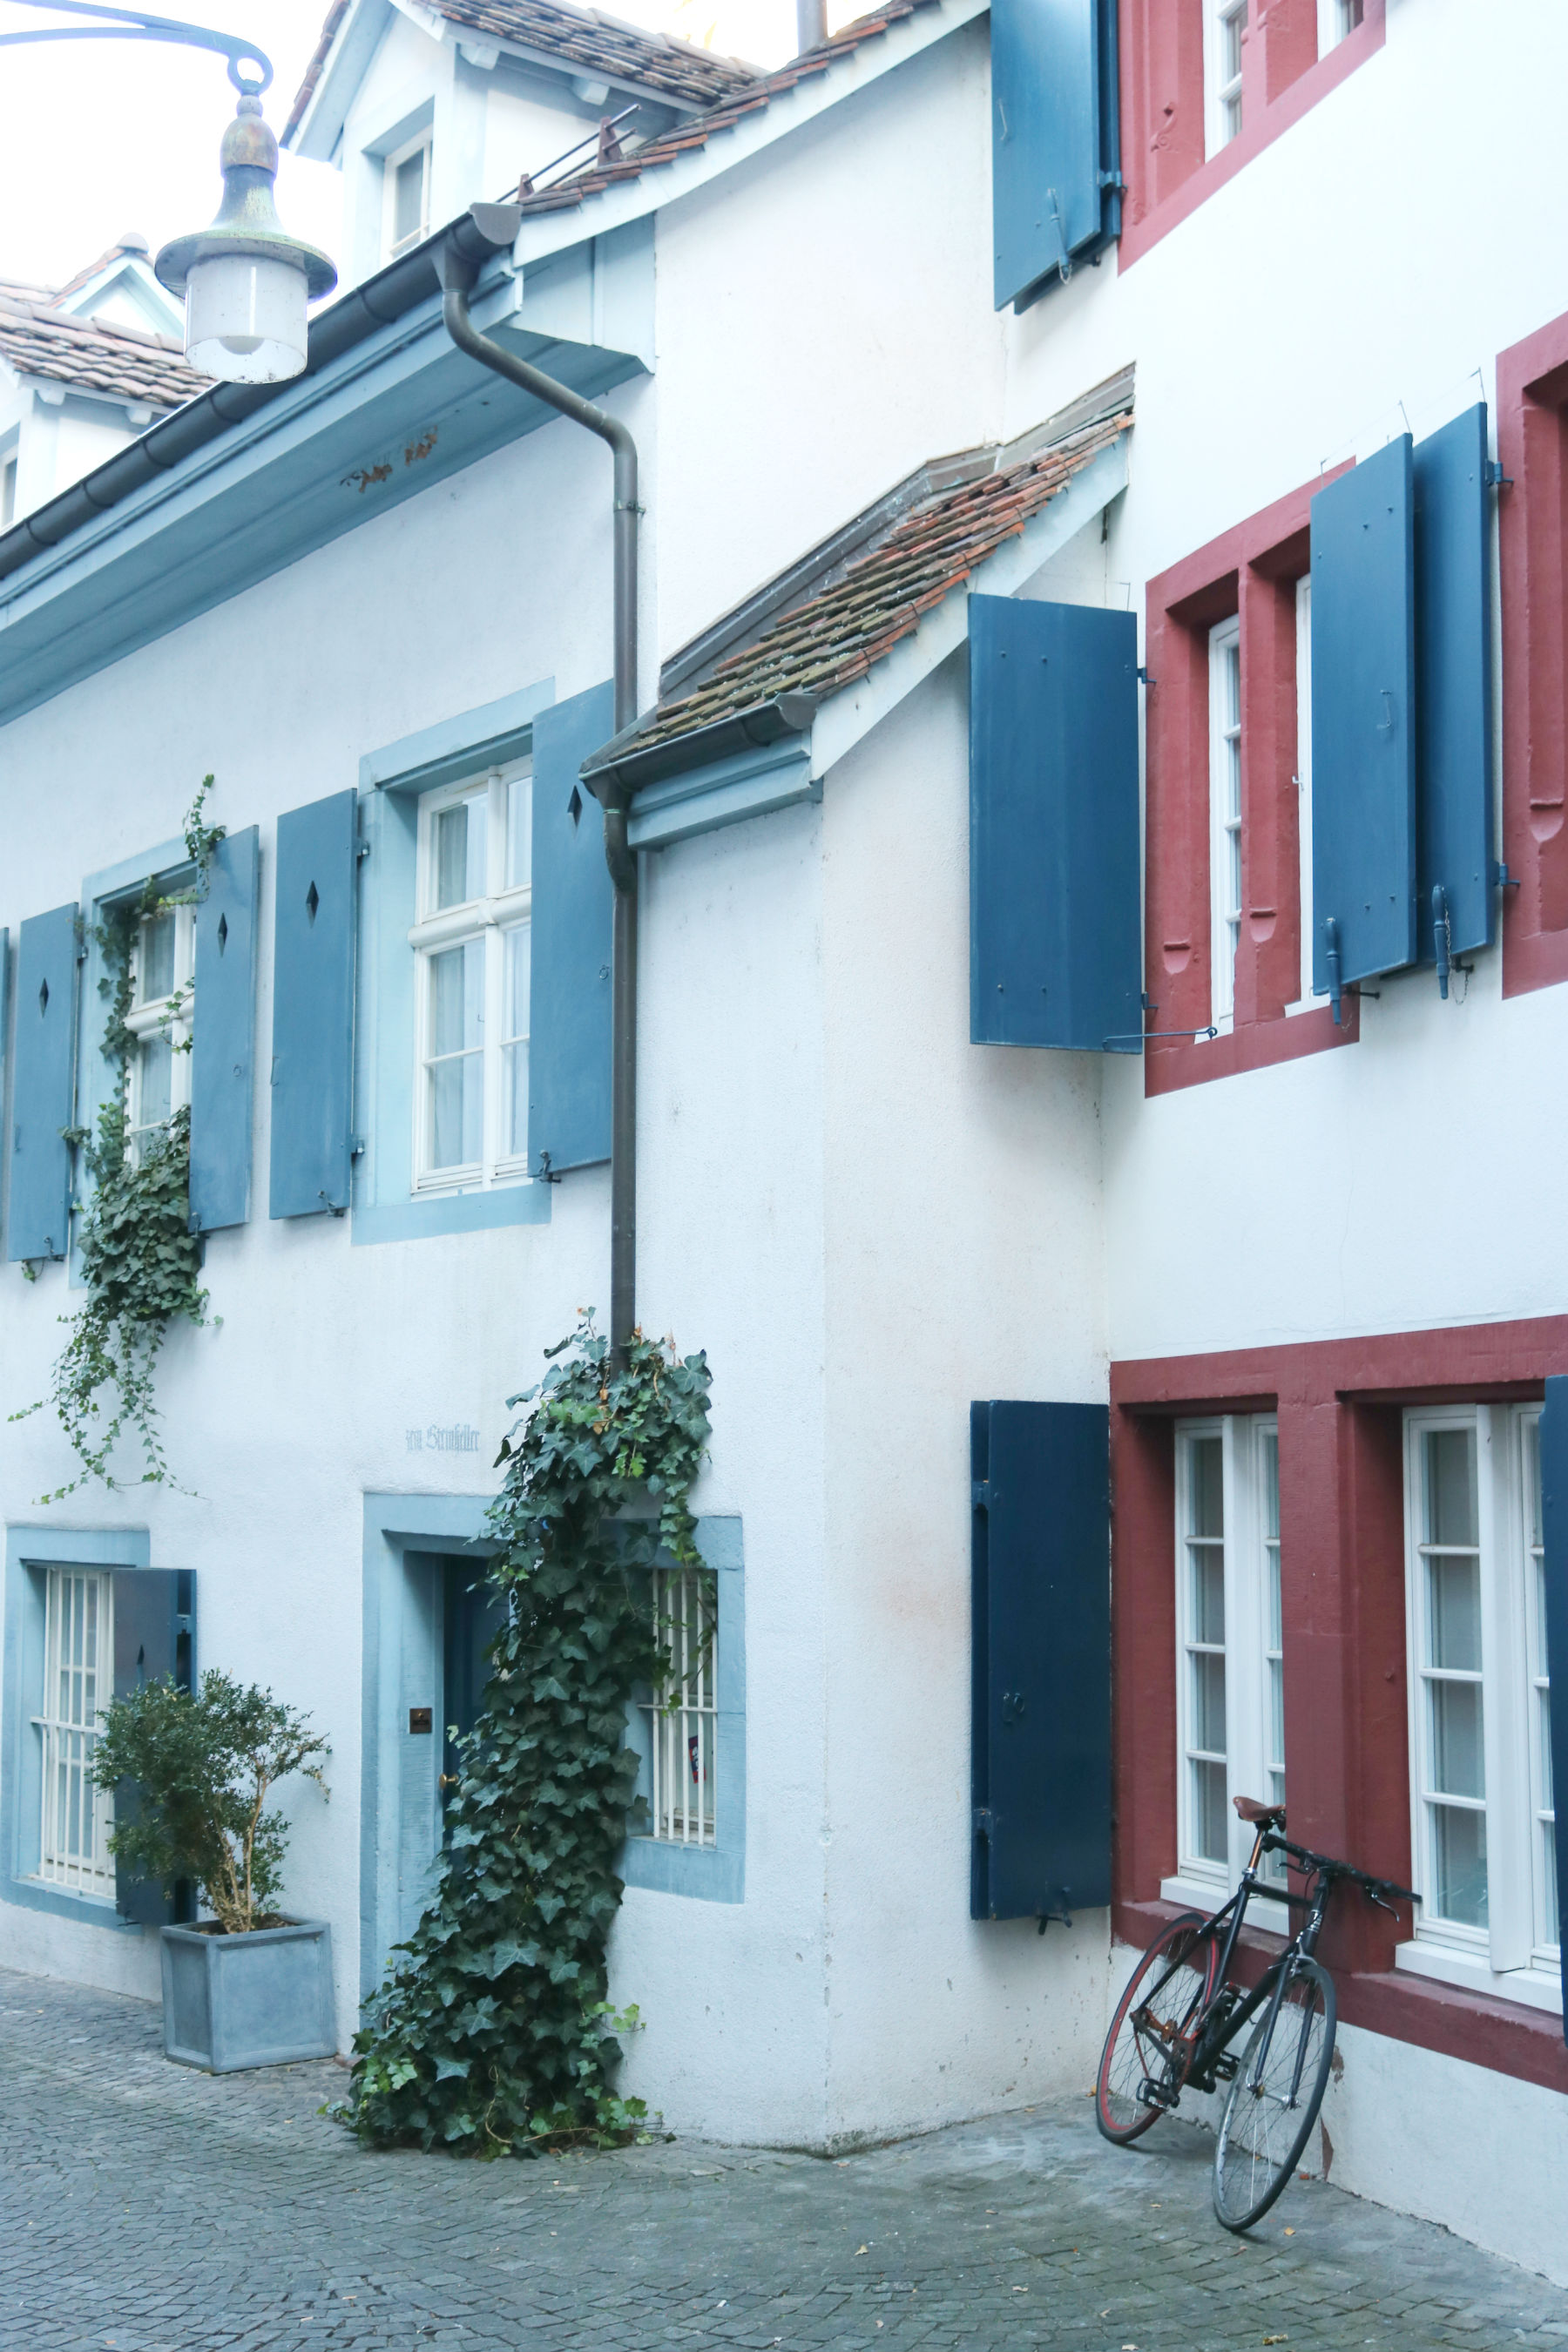 White houses with red and blue shutters in Basel, Switzerland